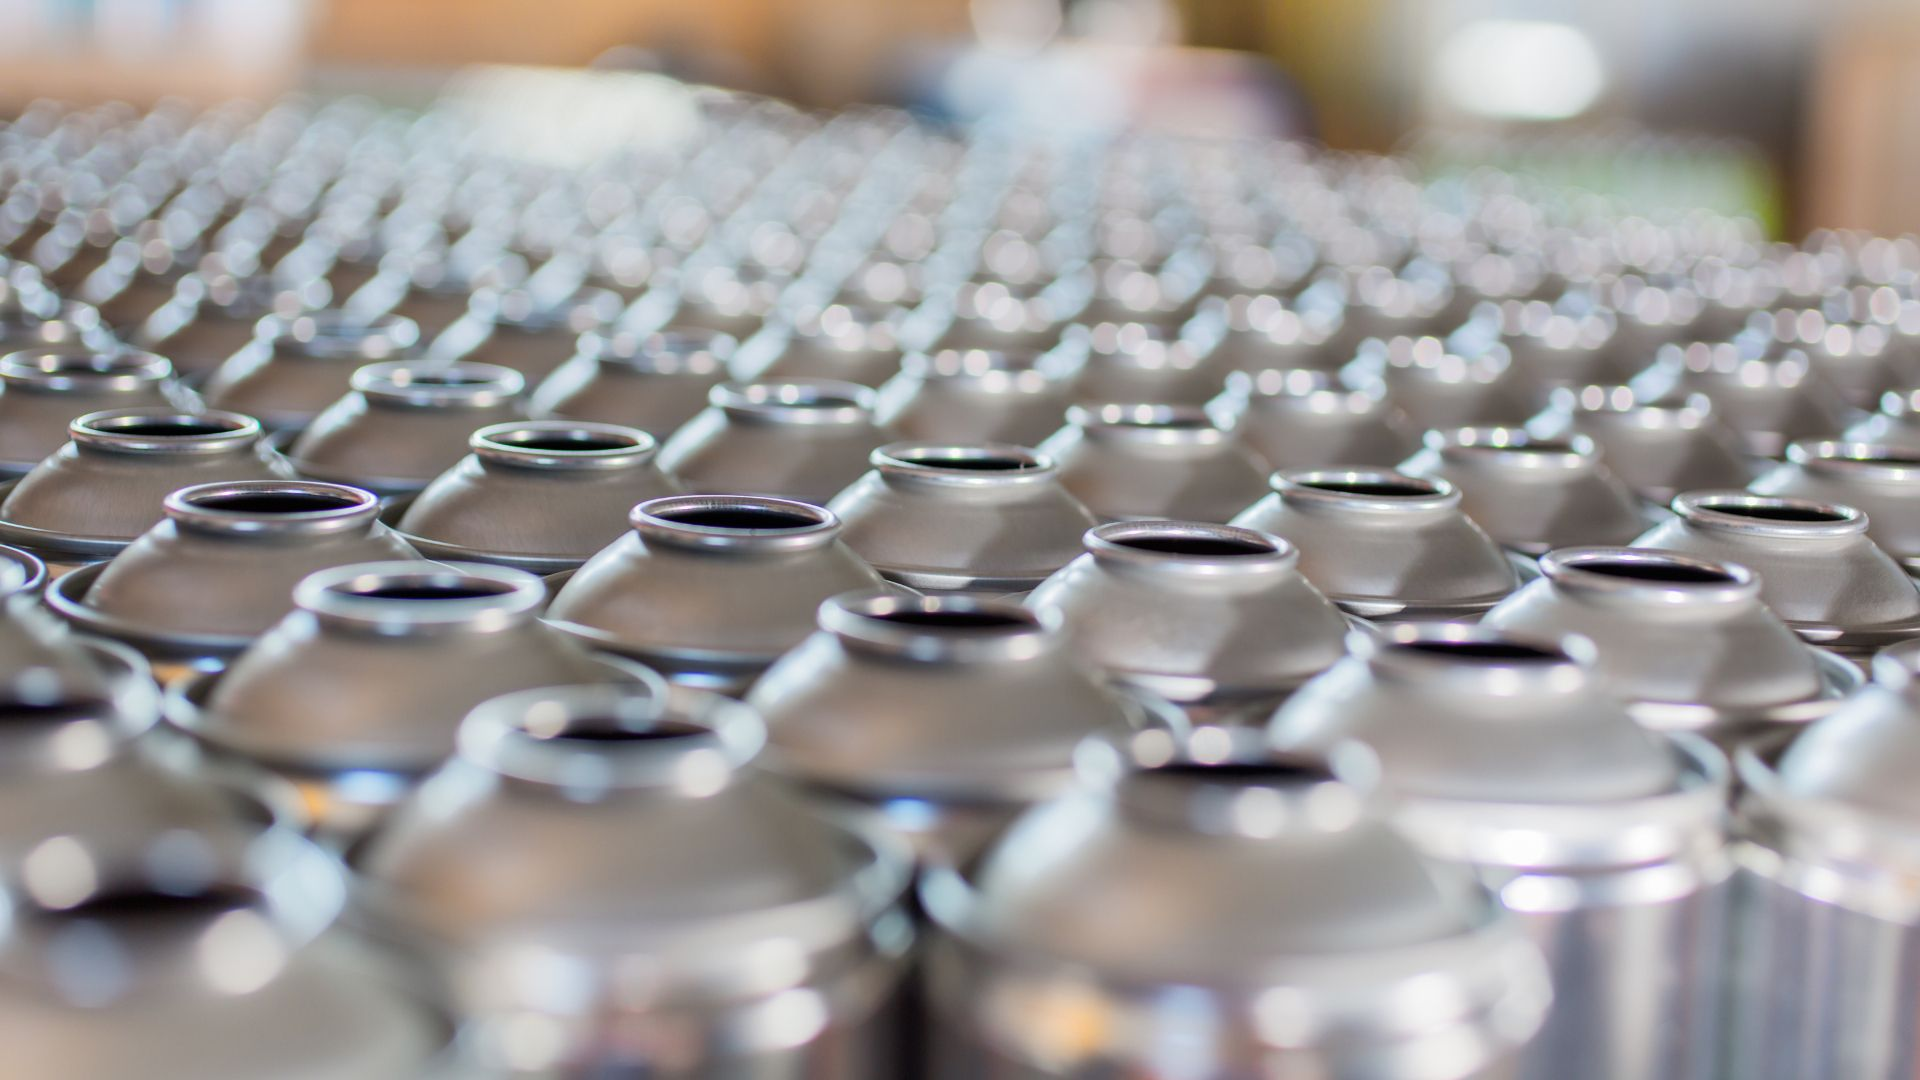 China Aluminum Cans Holdings Ltd has acquired a 70% stake in GZ Euro Aerosol & Household